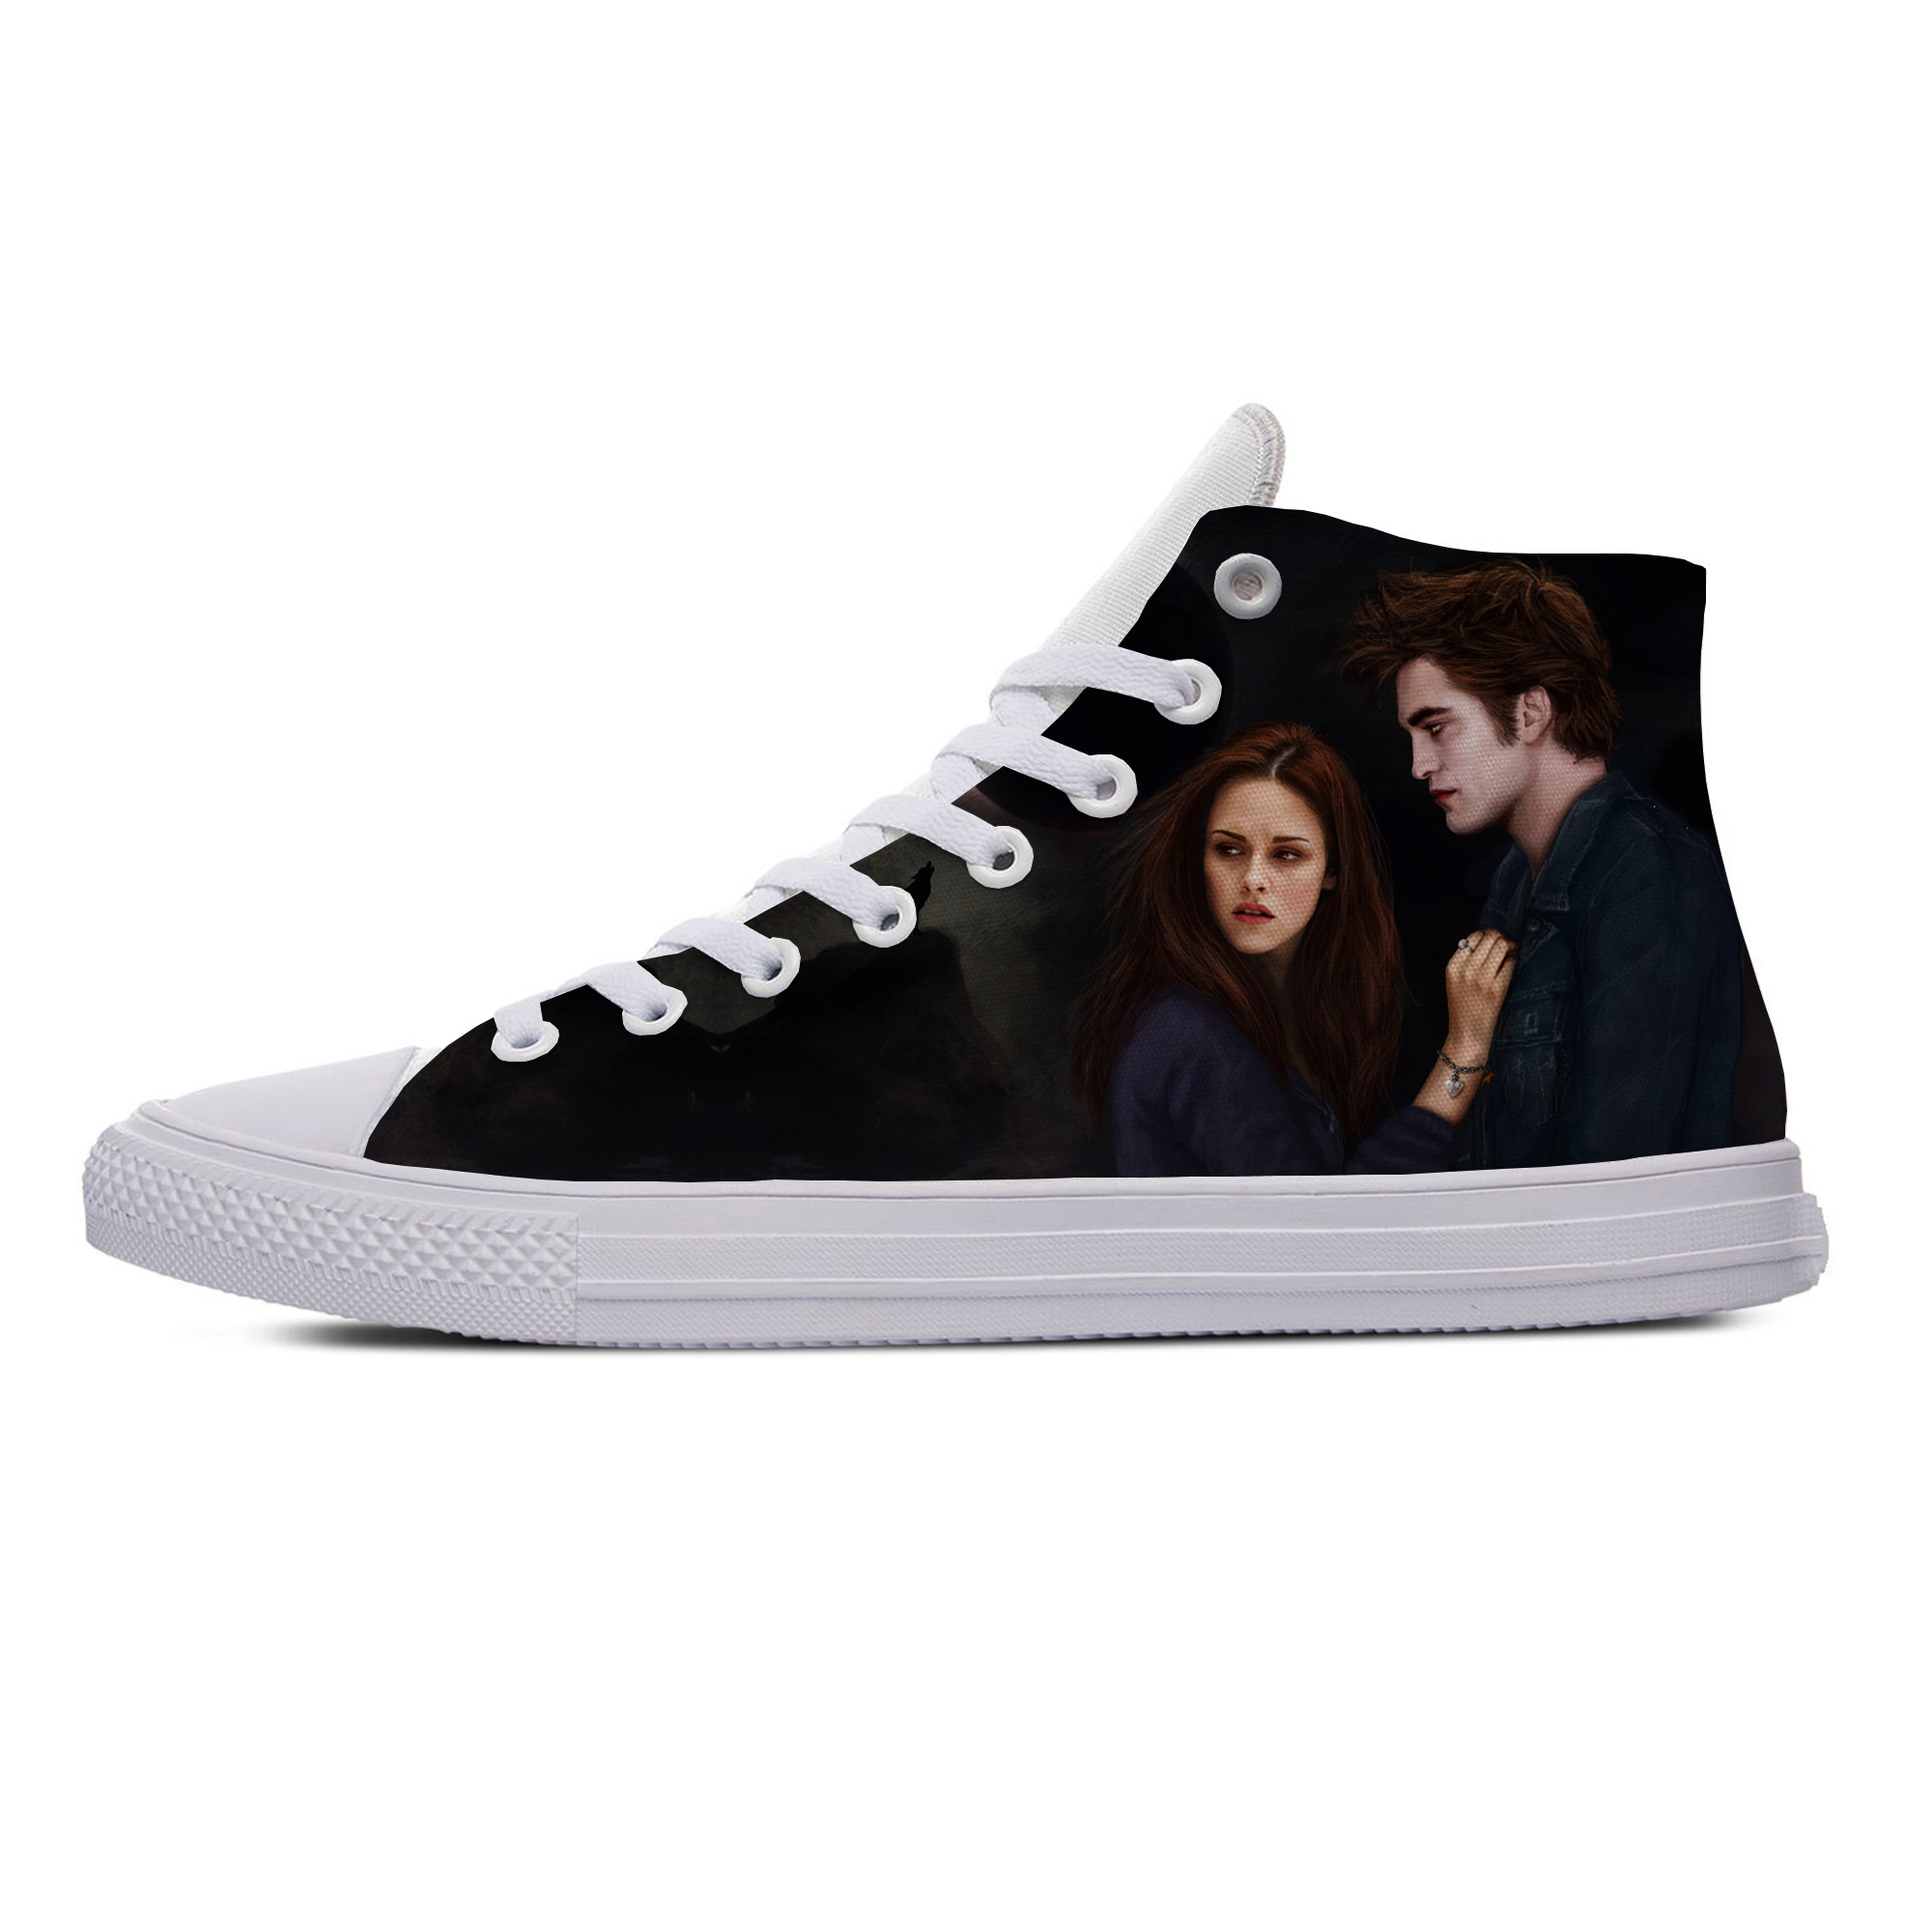 The Twilight Saga Love Movie Hot Cool Fashion Casual Canvas Shoes Breathable Lightweight Sneakers 3D Print For Men Women